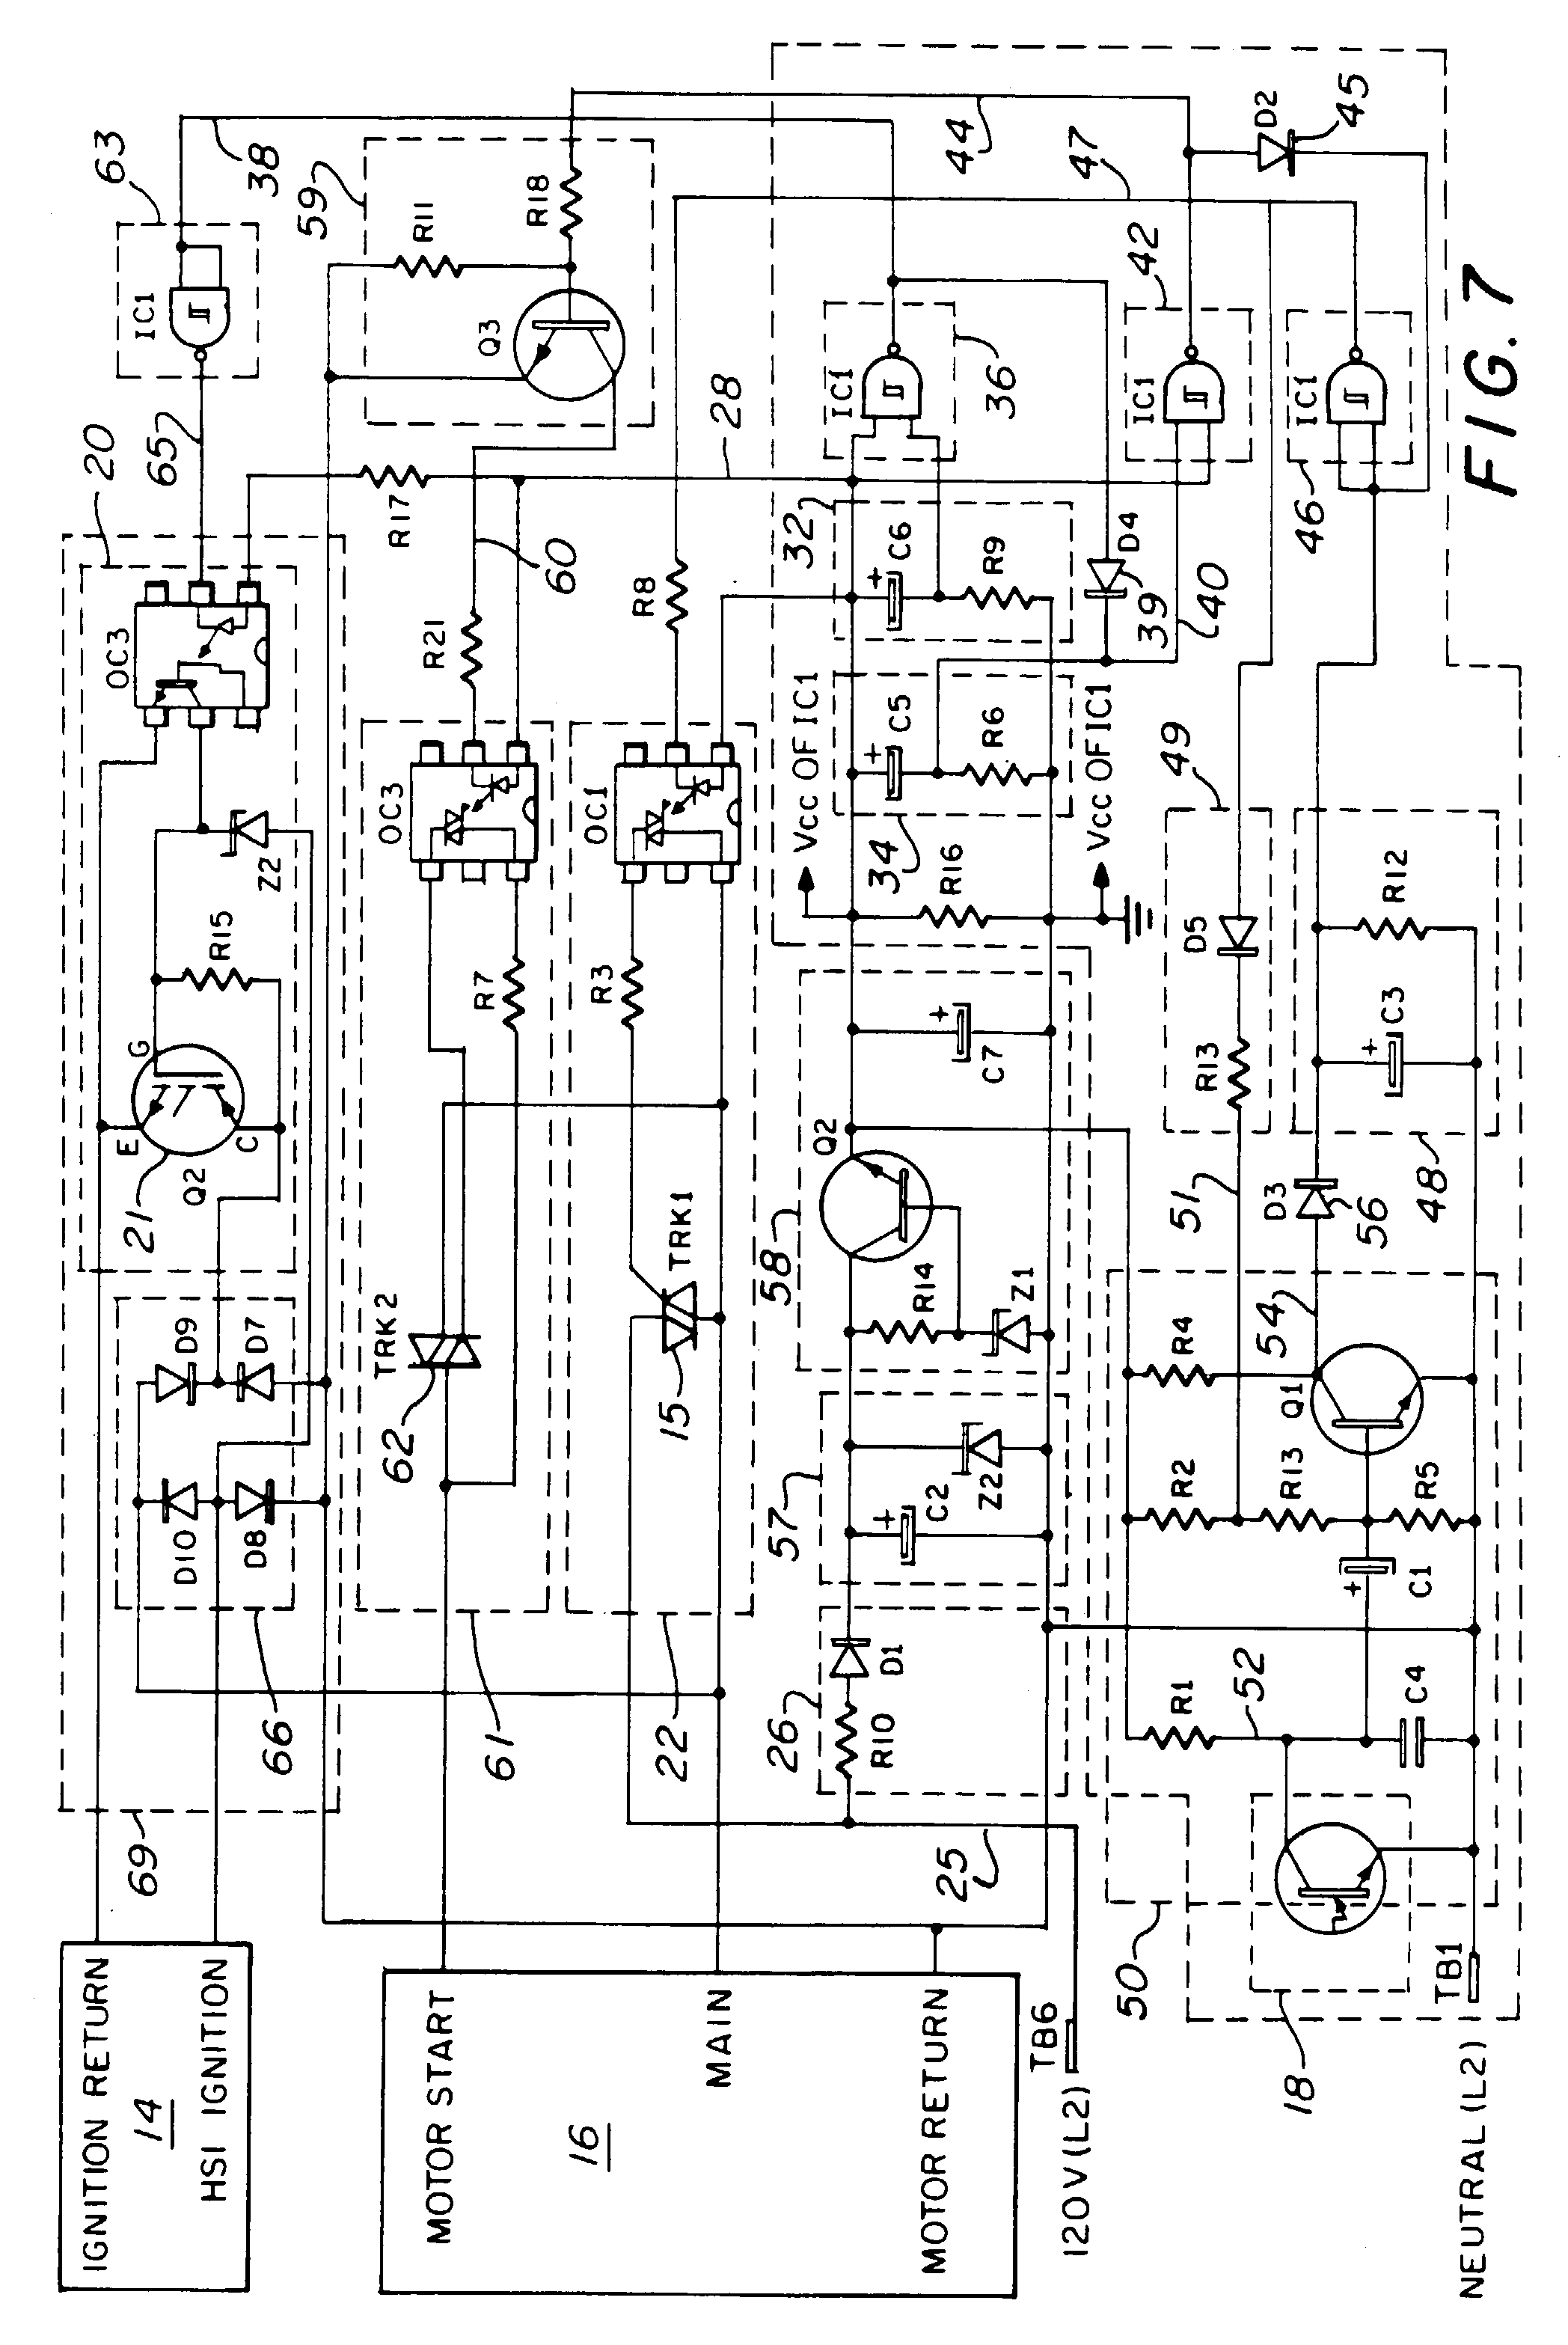 Power Flame Wiring Diagram : Power flame burner wiring schematic diagram